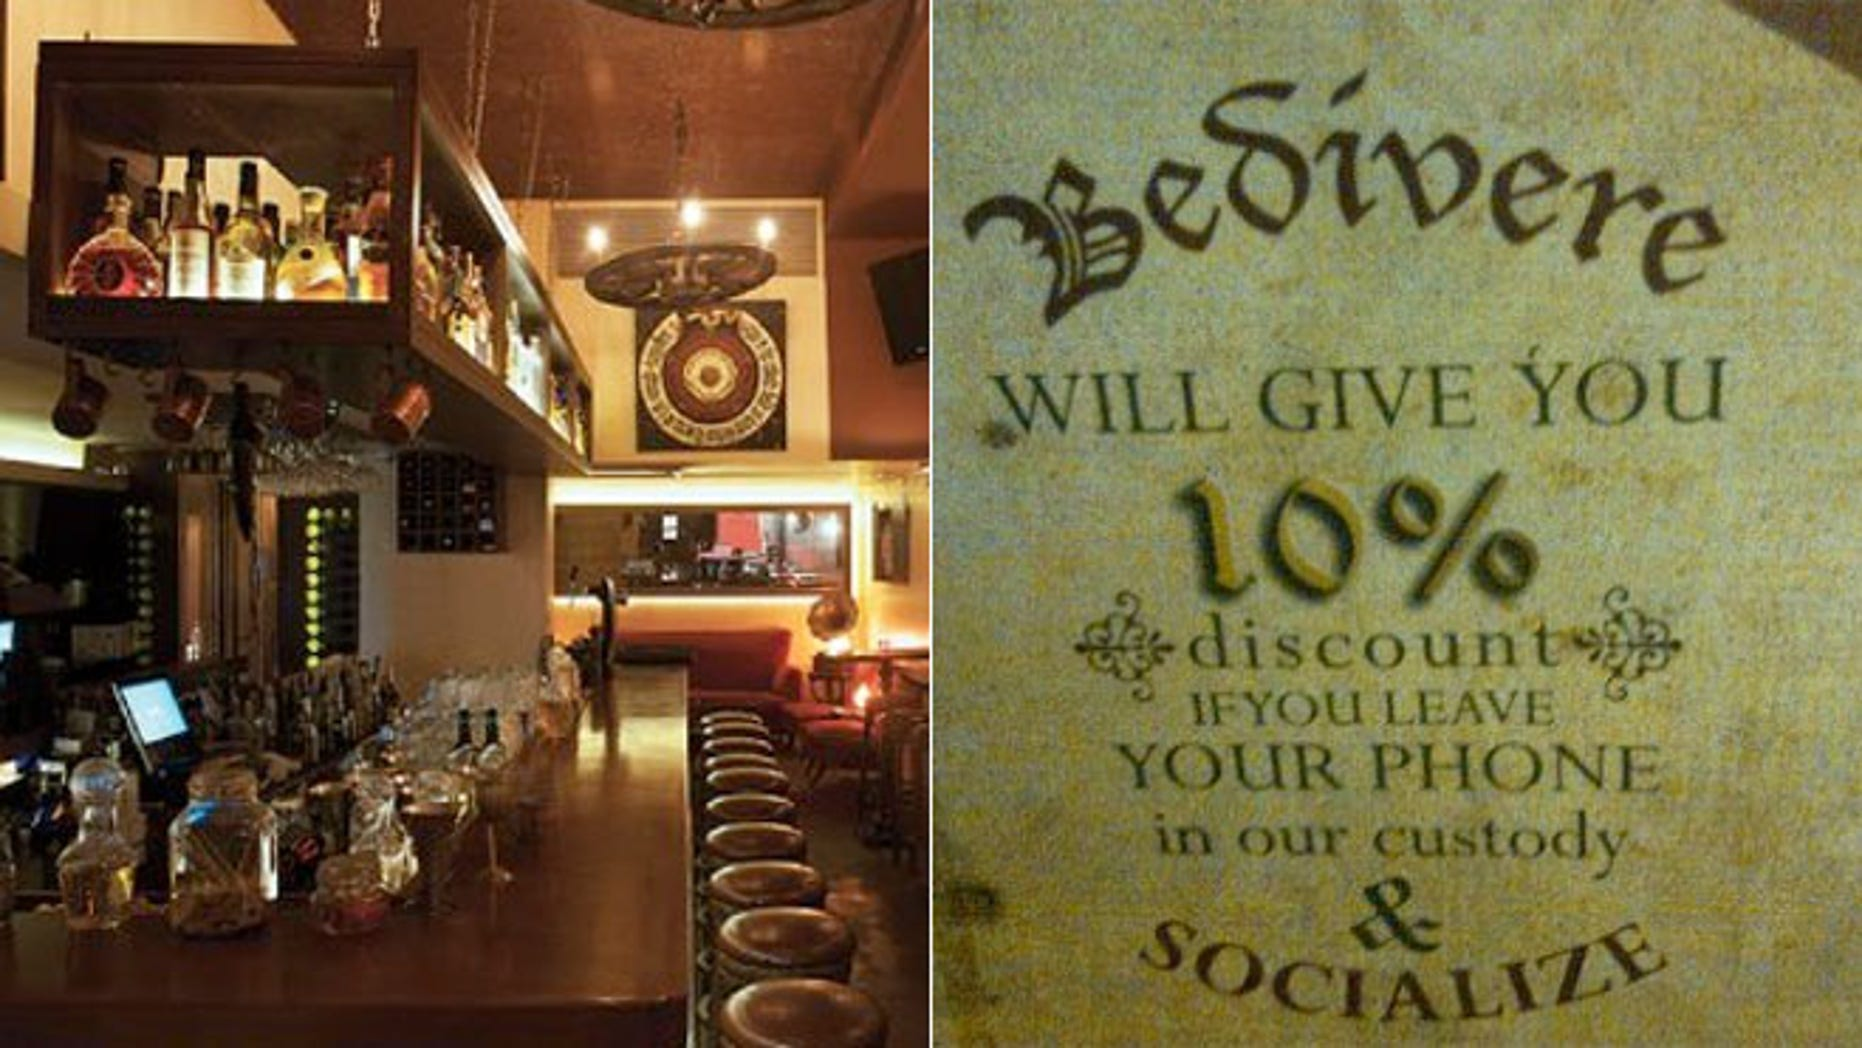 Bedivere Eatery & Tavern in Beirut, Lebanon wants people to socialize, not talk on the phone, during their meal.